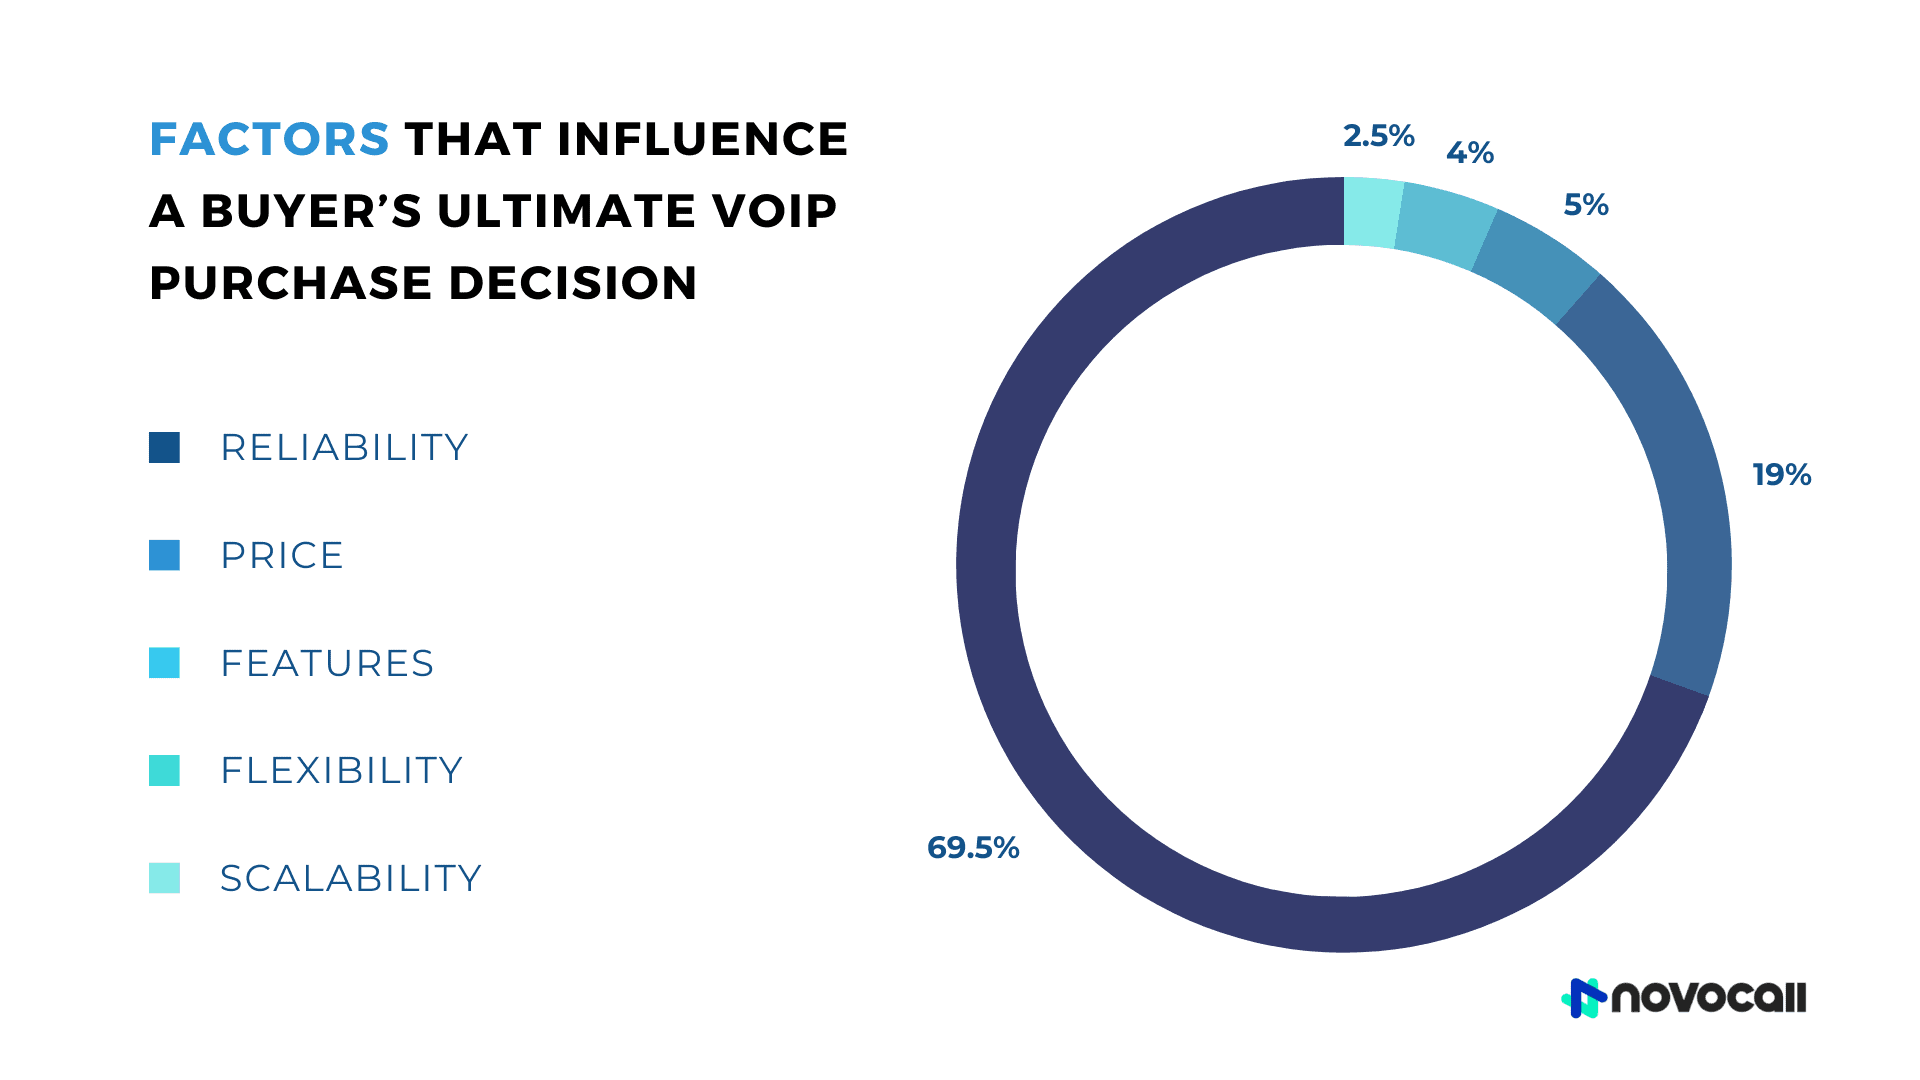 When choosing a VoIP business provider, the factors that influence a buyer's ultimate purchase decision are reliability (69.5%), price (19%), features (5%), flexibility (4%), and scalability (2.5%).